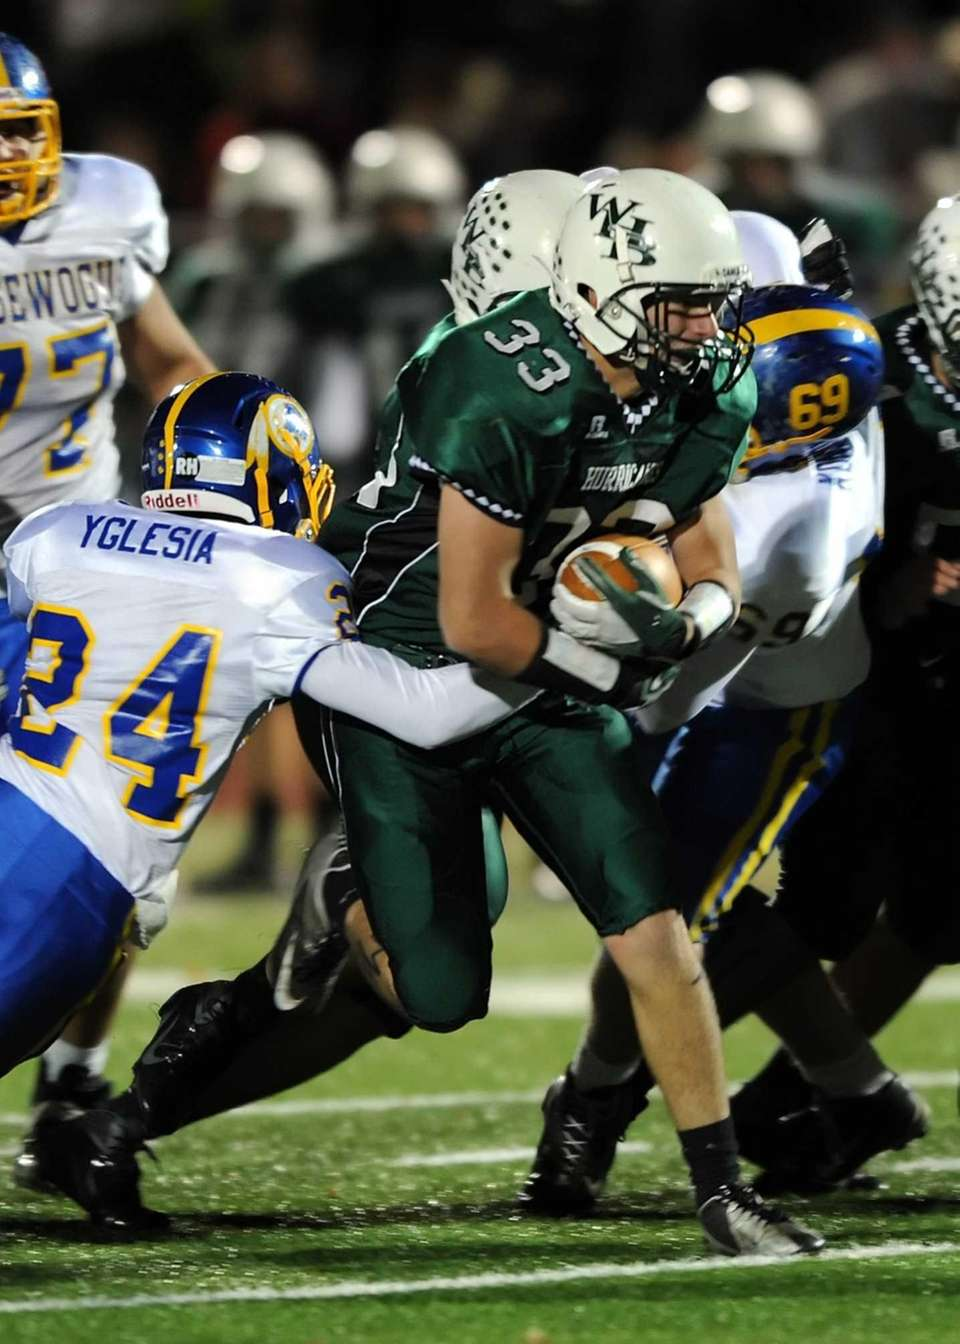 Westhampton's Patrick Dean powers for a first down.